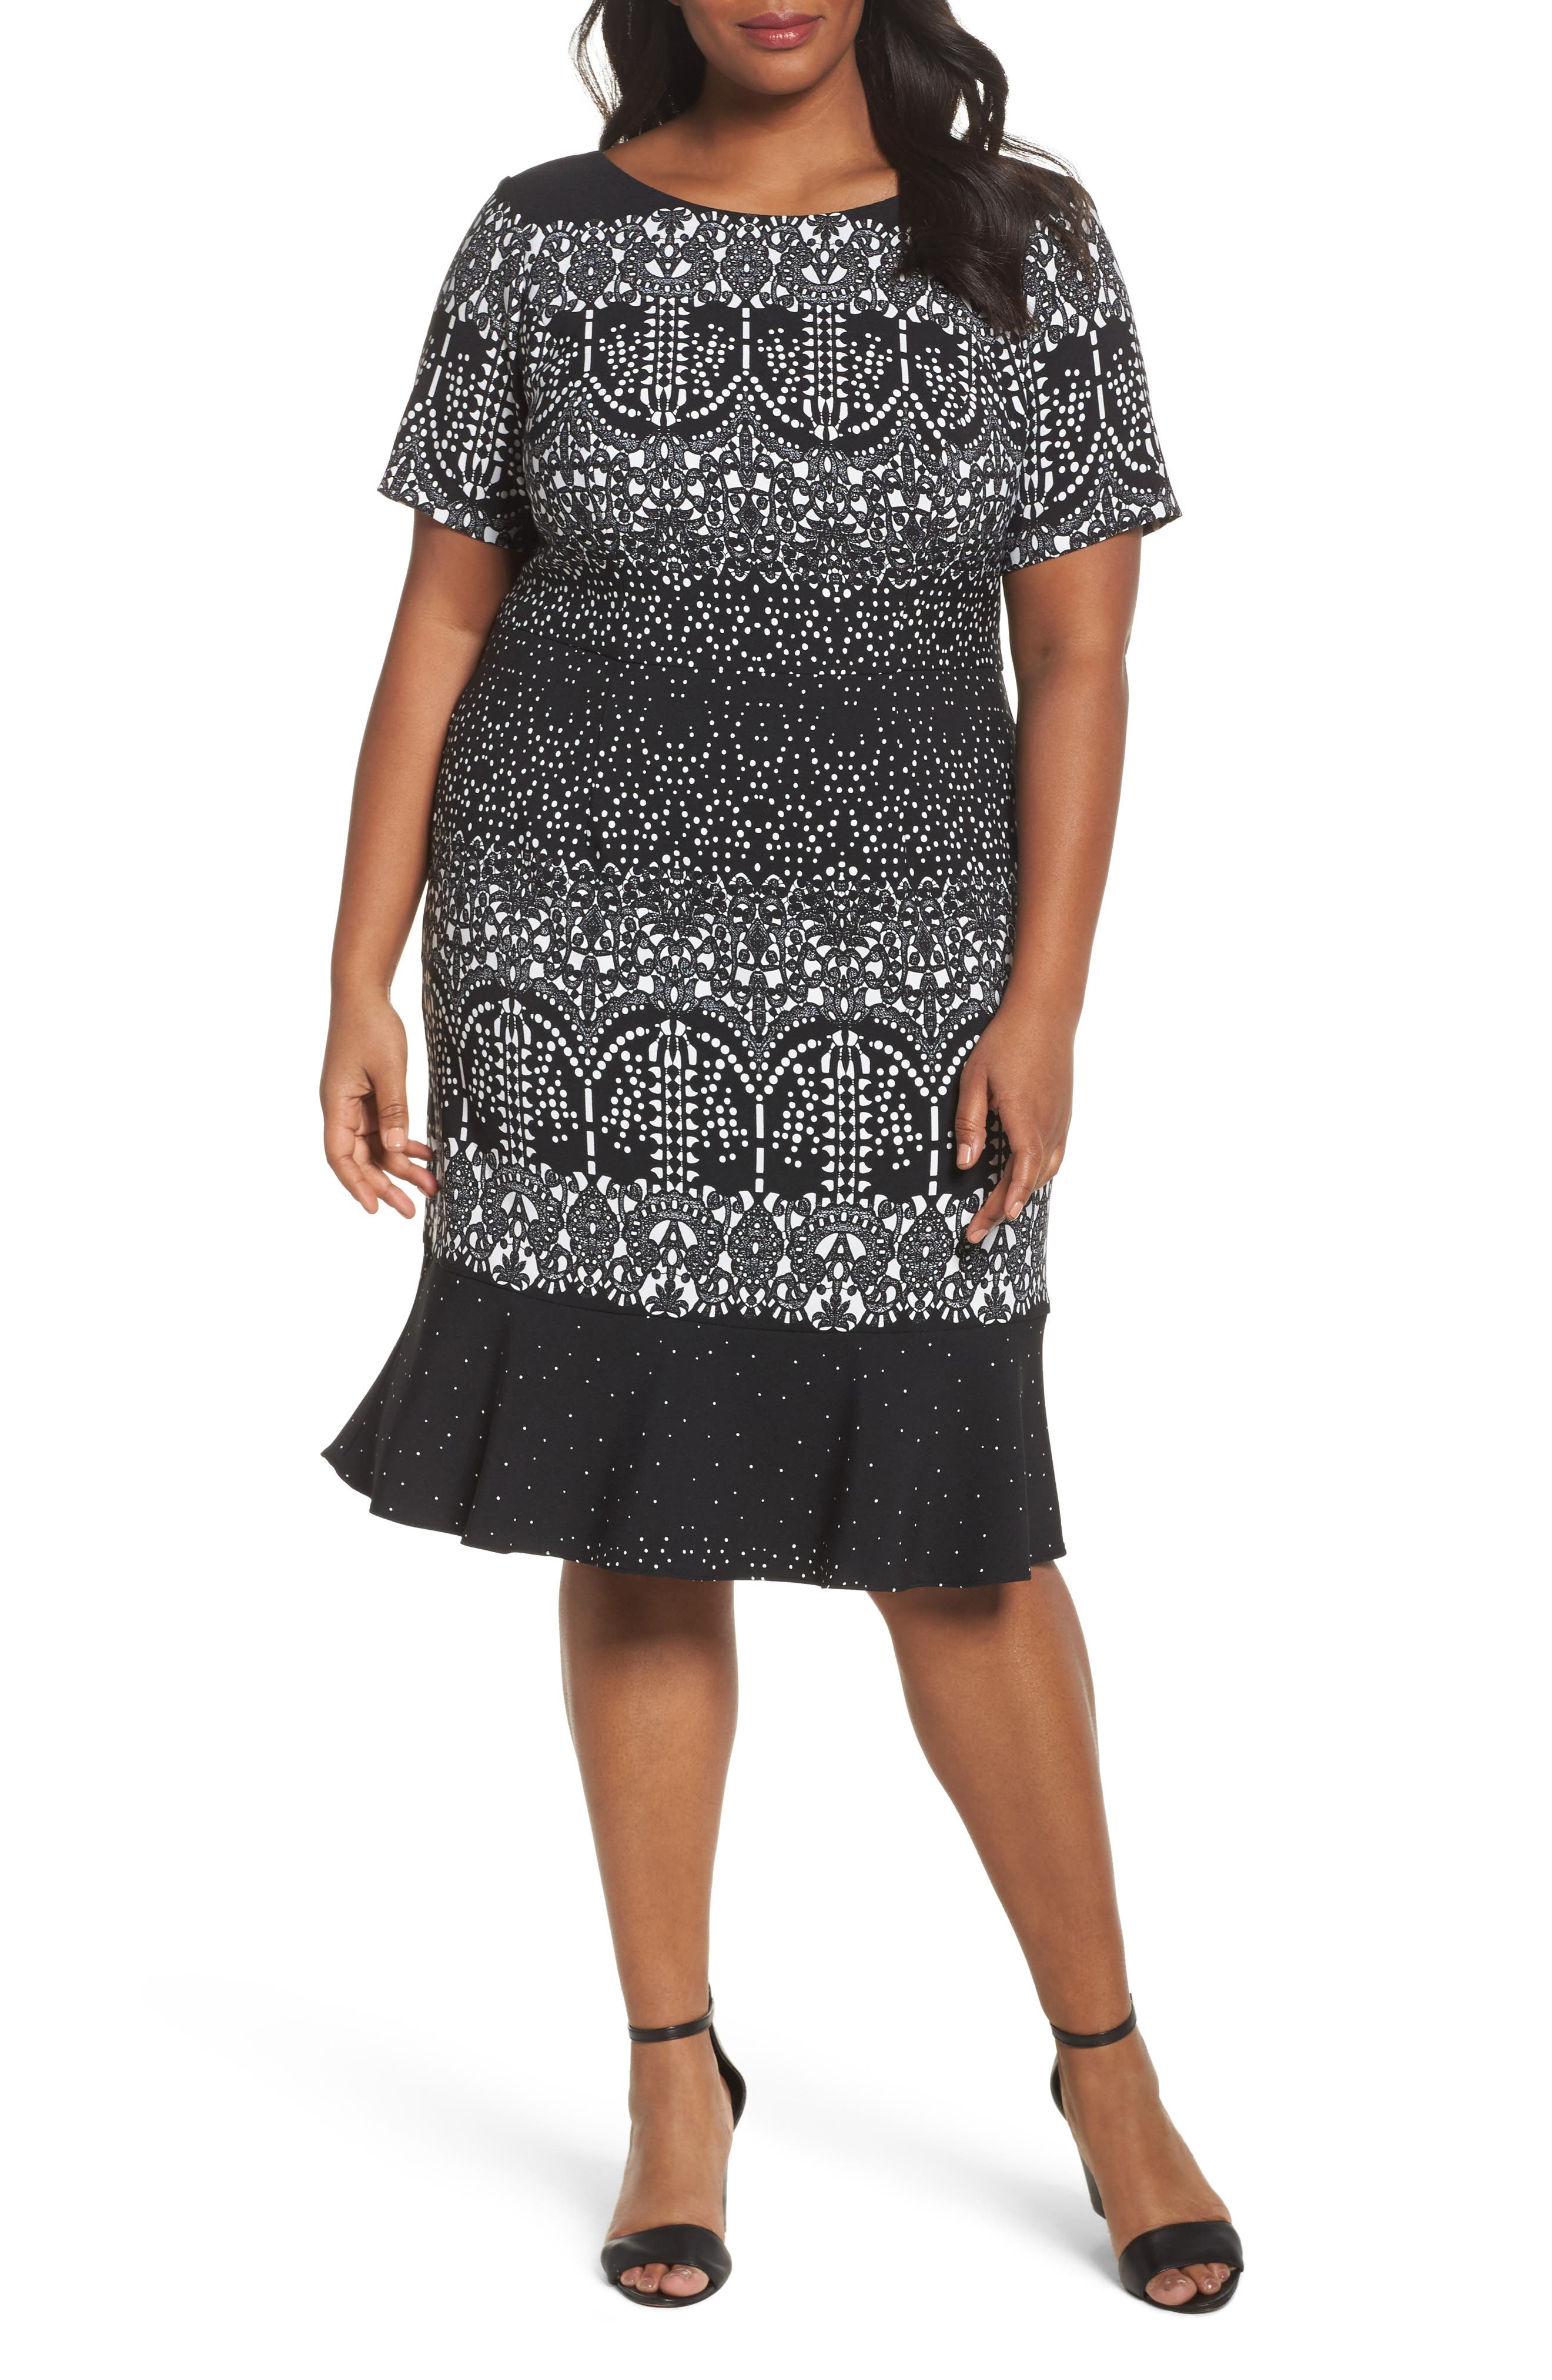 Main Image - Adrianna Papell Lace Majesty Print Fit & Flare Dress (Plus Size)